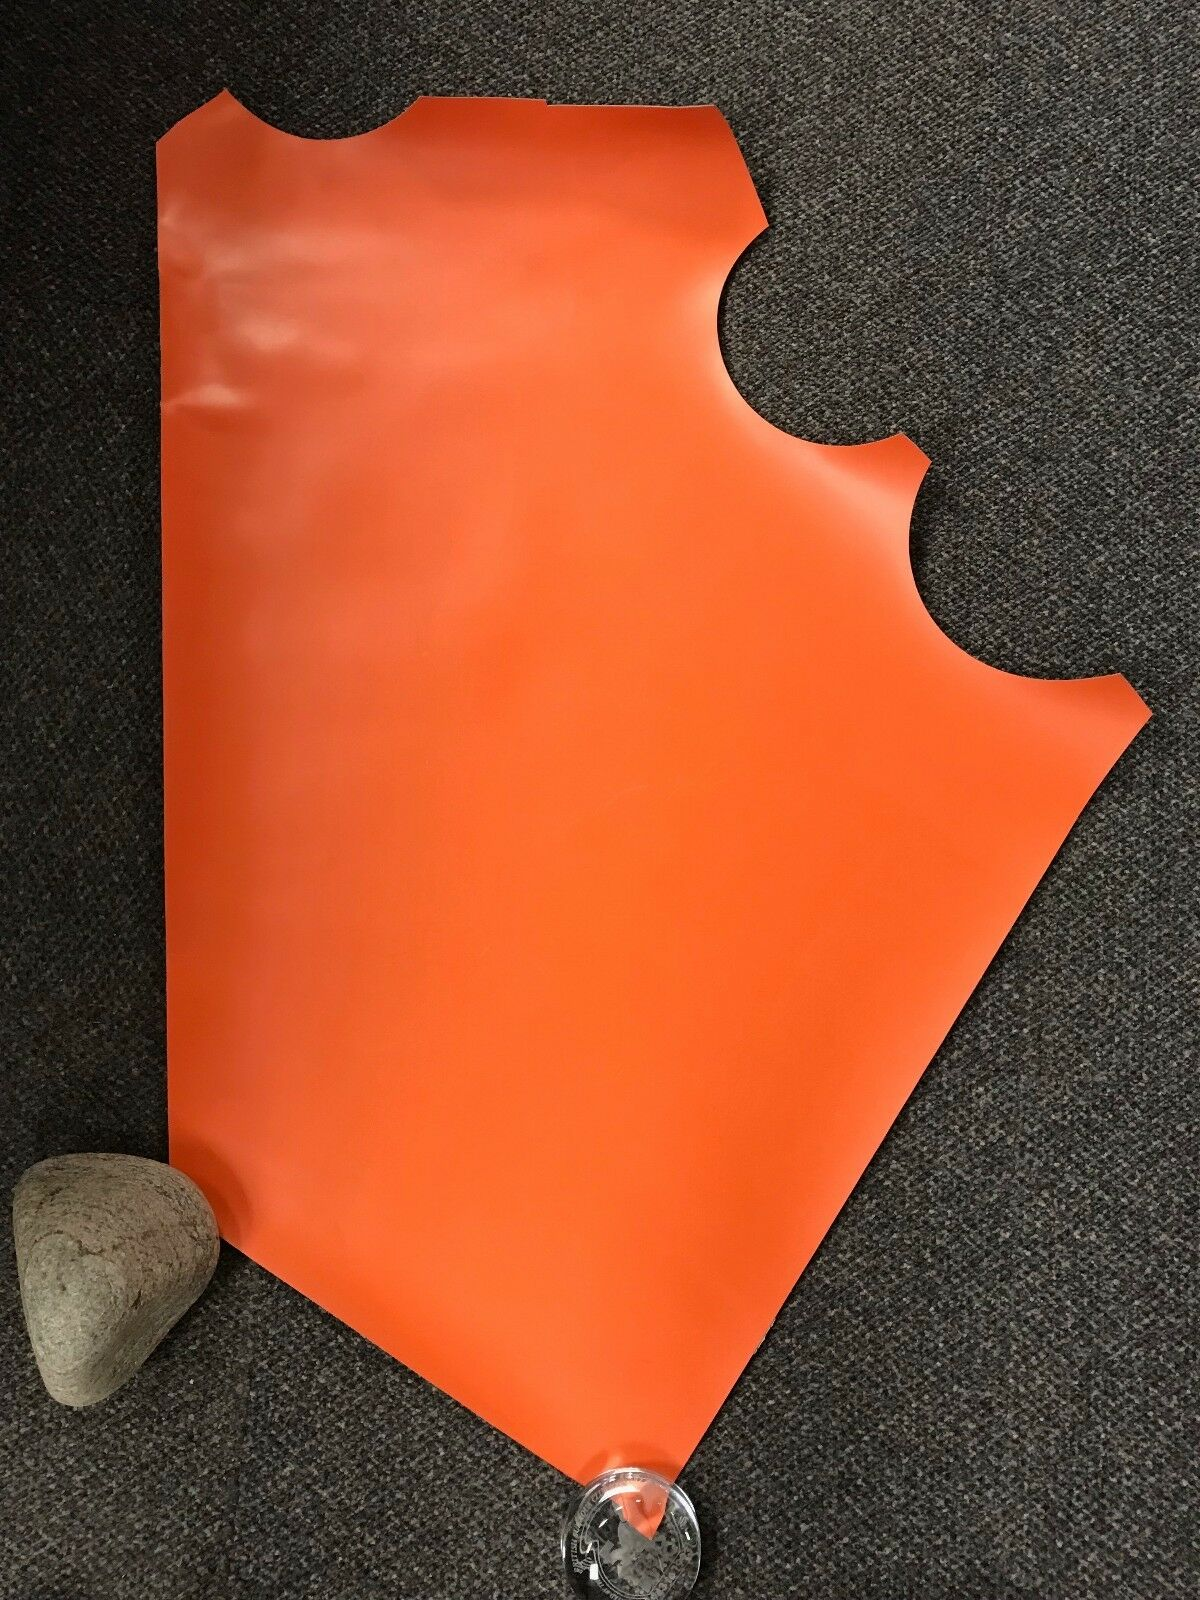 orange ORCA Hypalon FABRIC Inflatable Boat Material Repair Dinghy 75.5 x 64cm